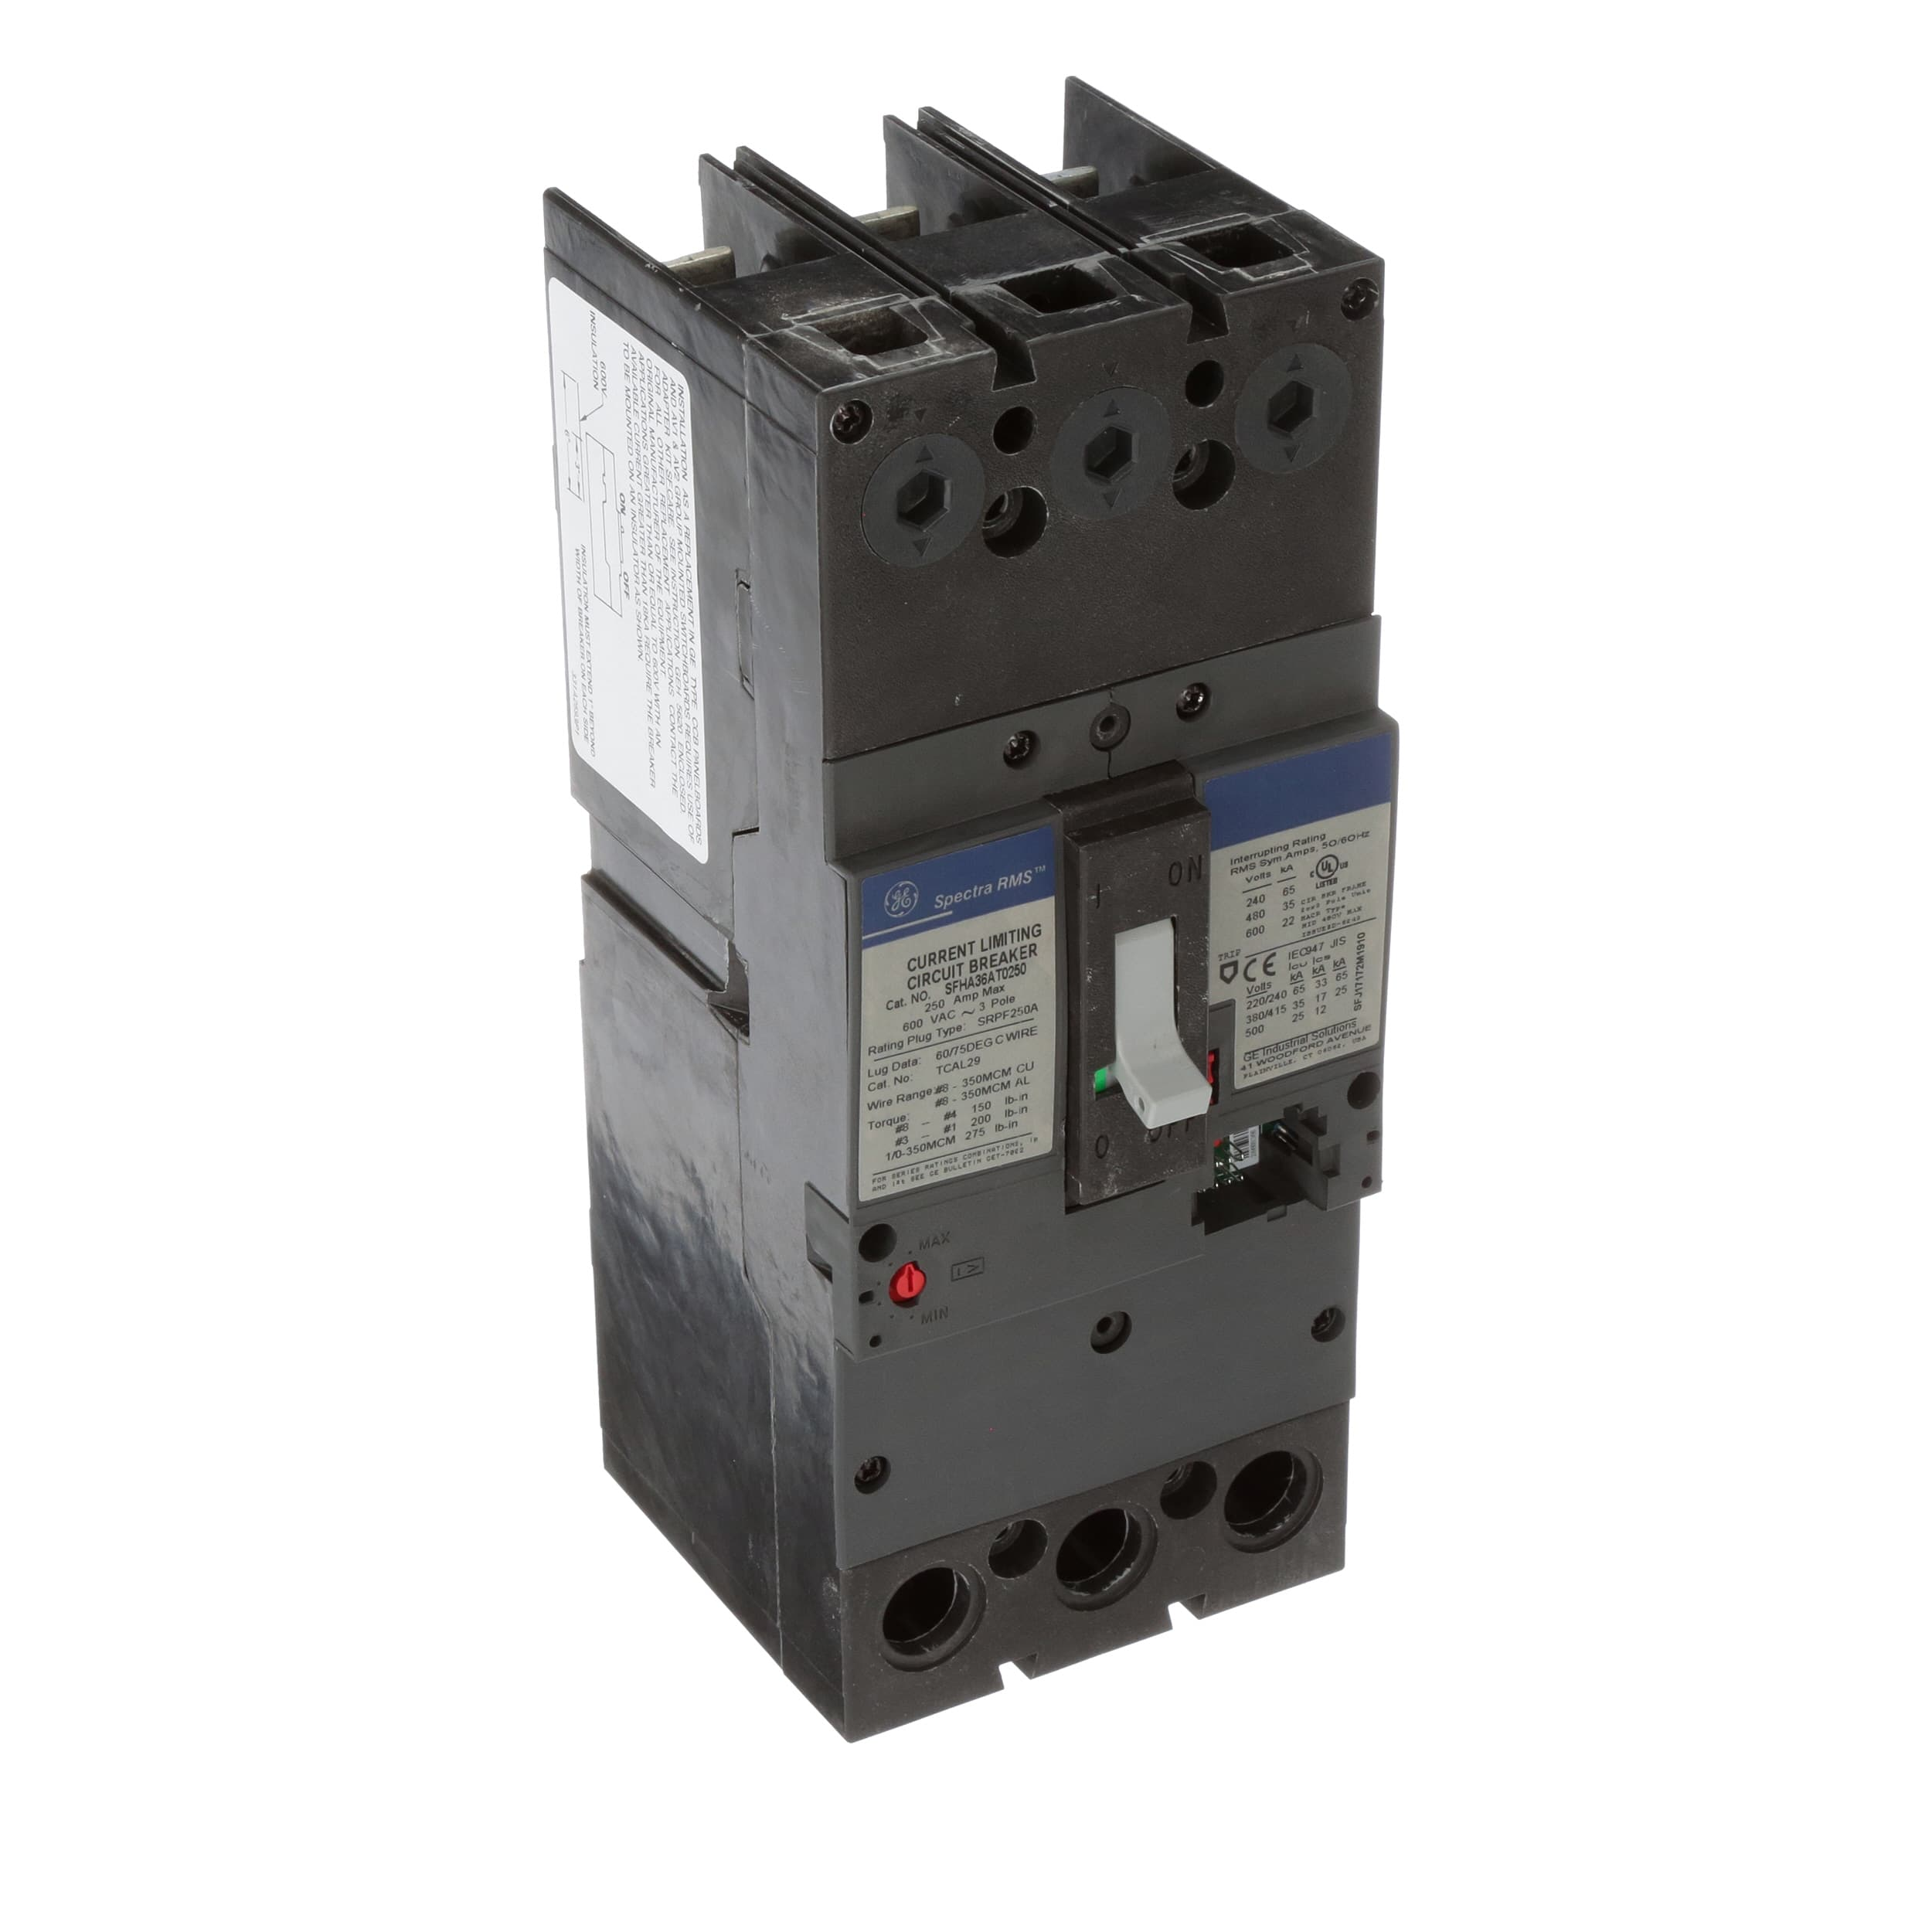 Ge Industrial Solutions Sfha36at0250 Breaker Molded Case Sfh Install Or Replace All Types Of Circuit Breakers 3p 600v 250a Allied Electronics Automation